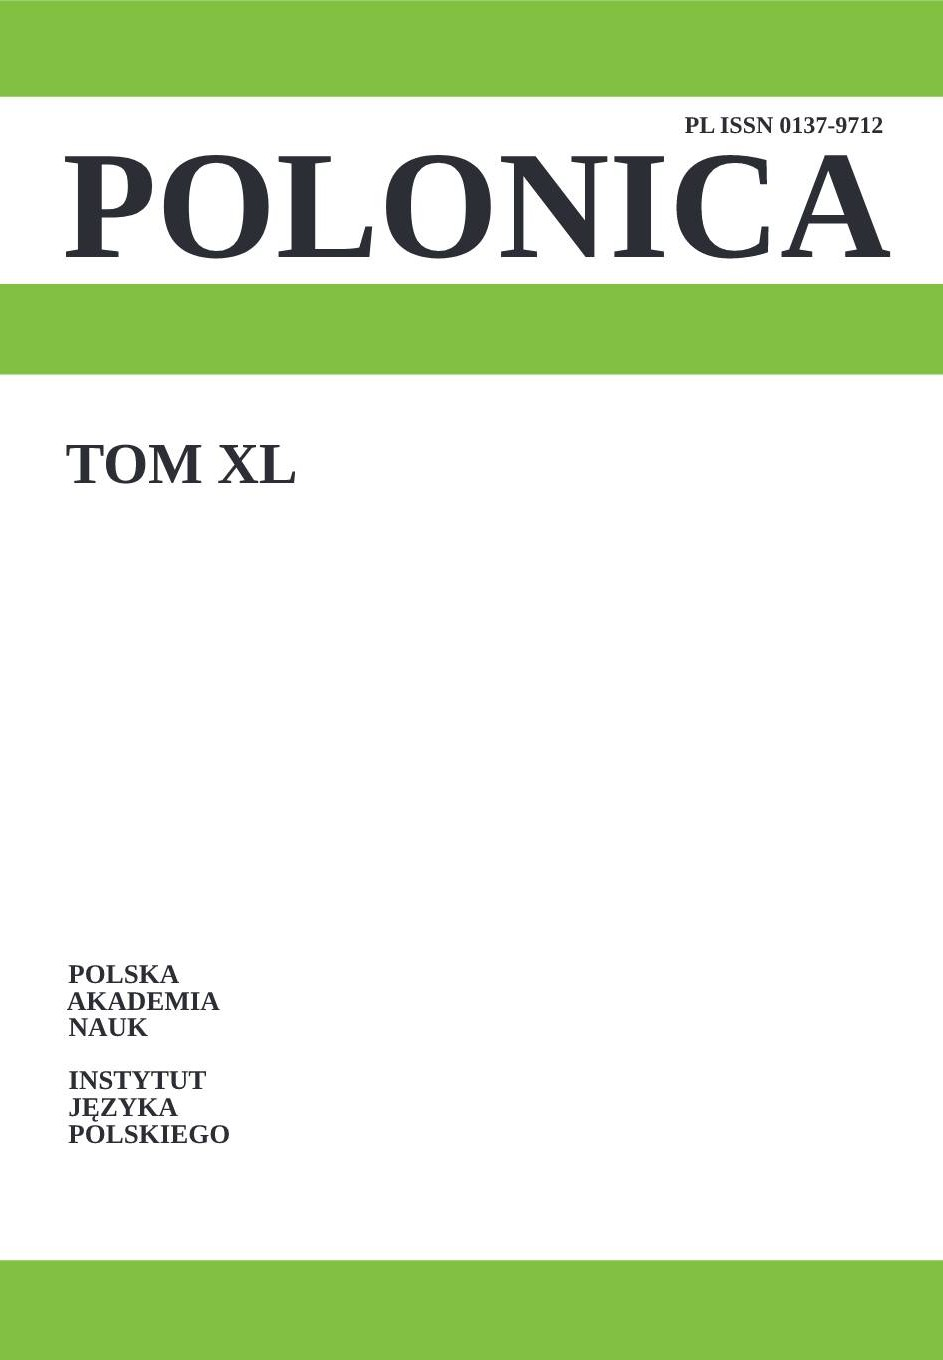 COVER POLONICA XL